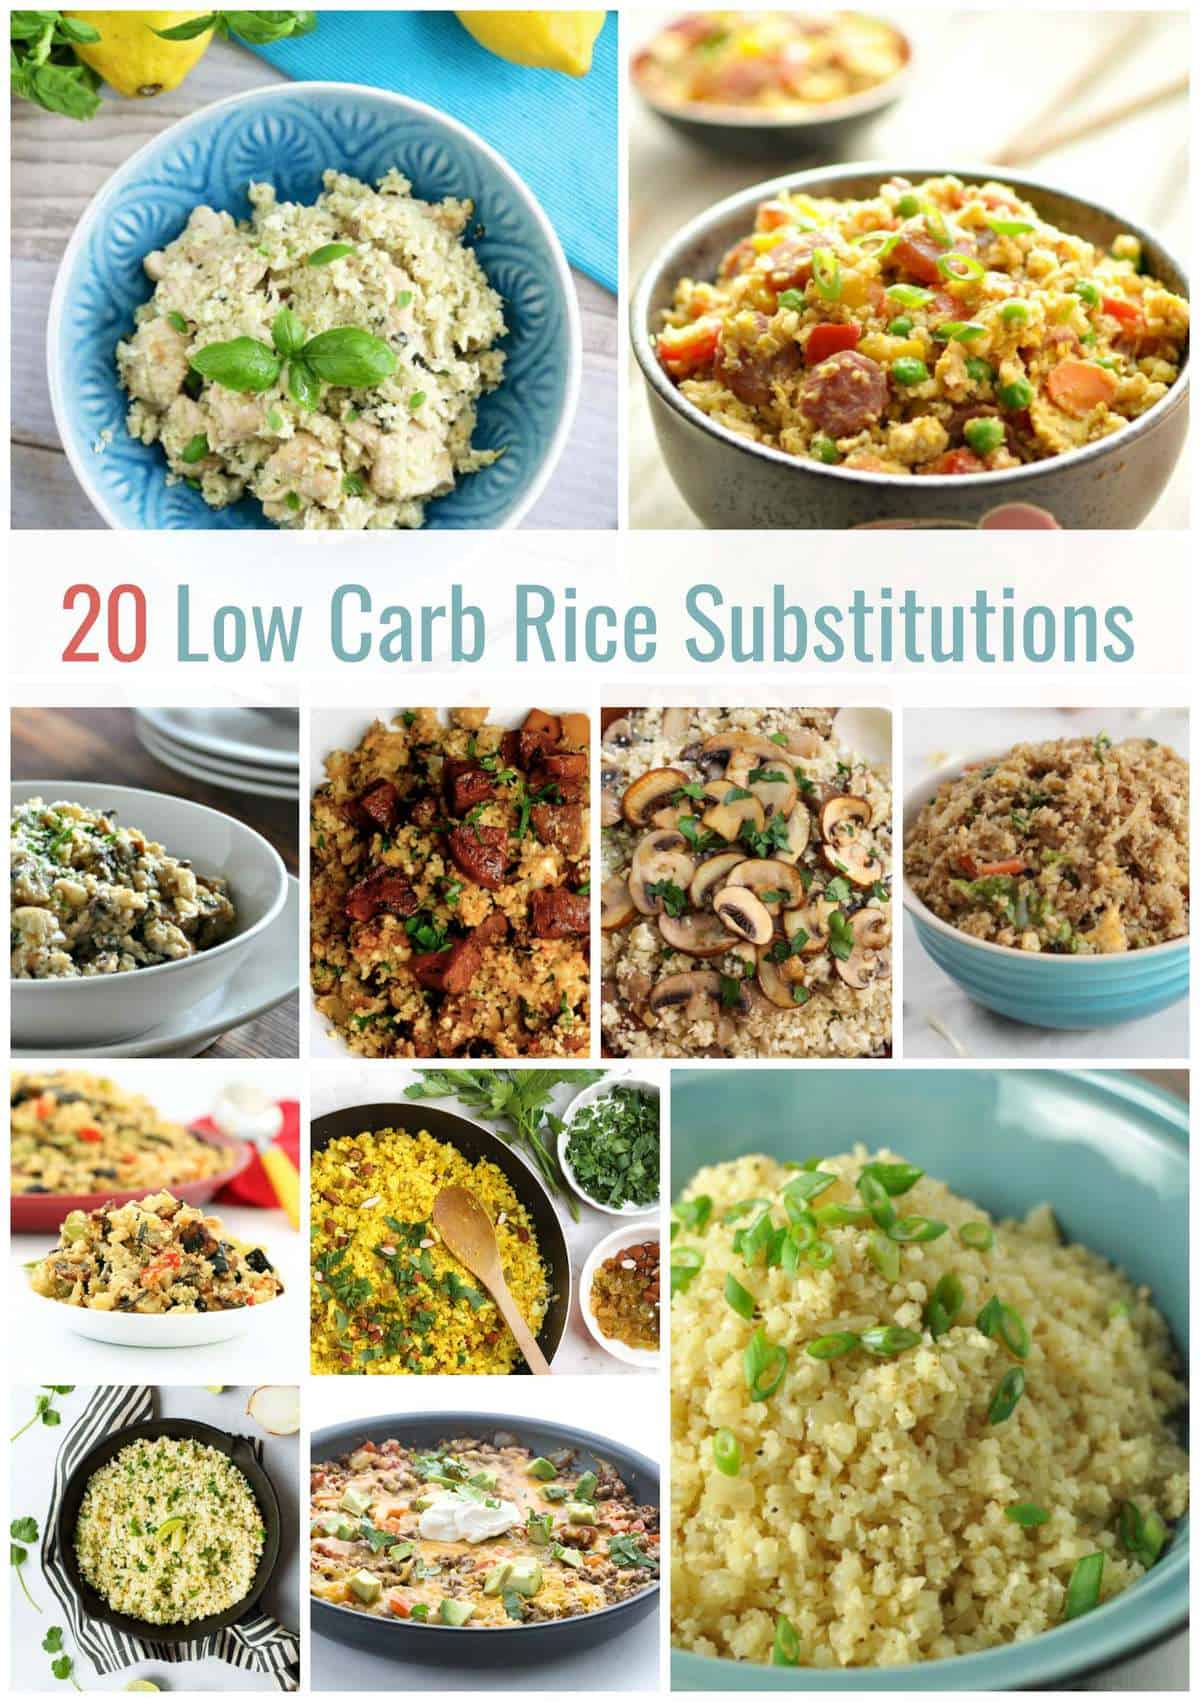 20 Low Carb Rice Substitution Recipes   Healthy Living in Body and Mind